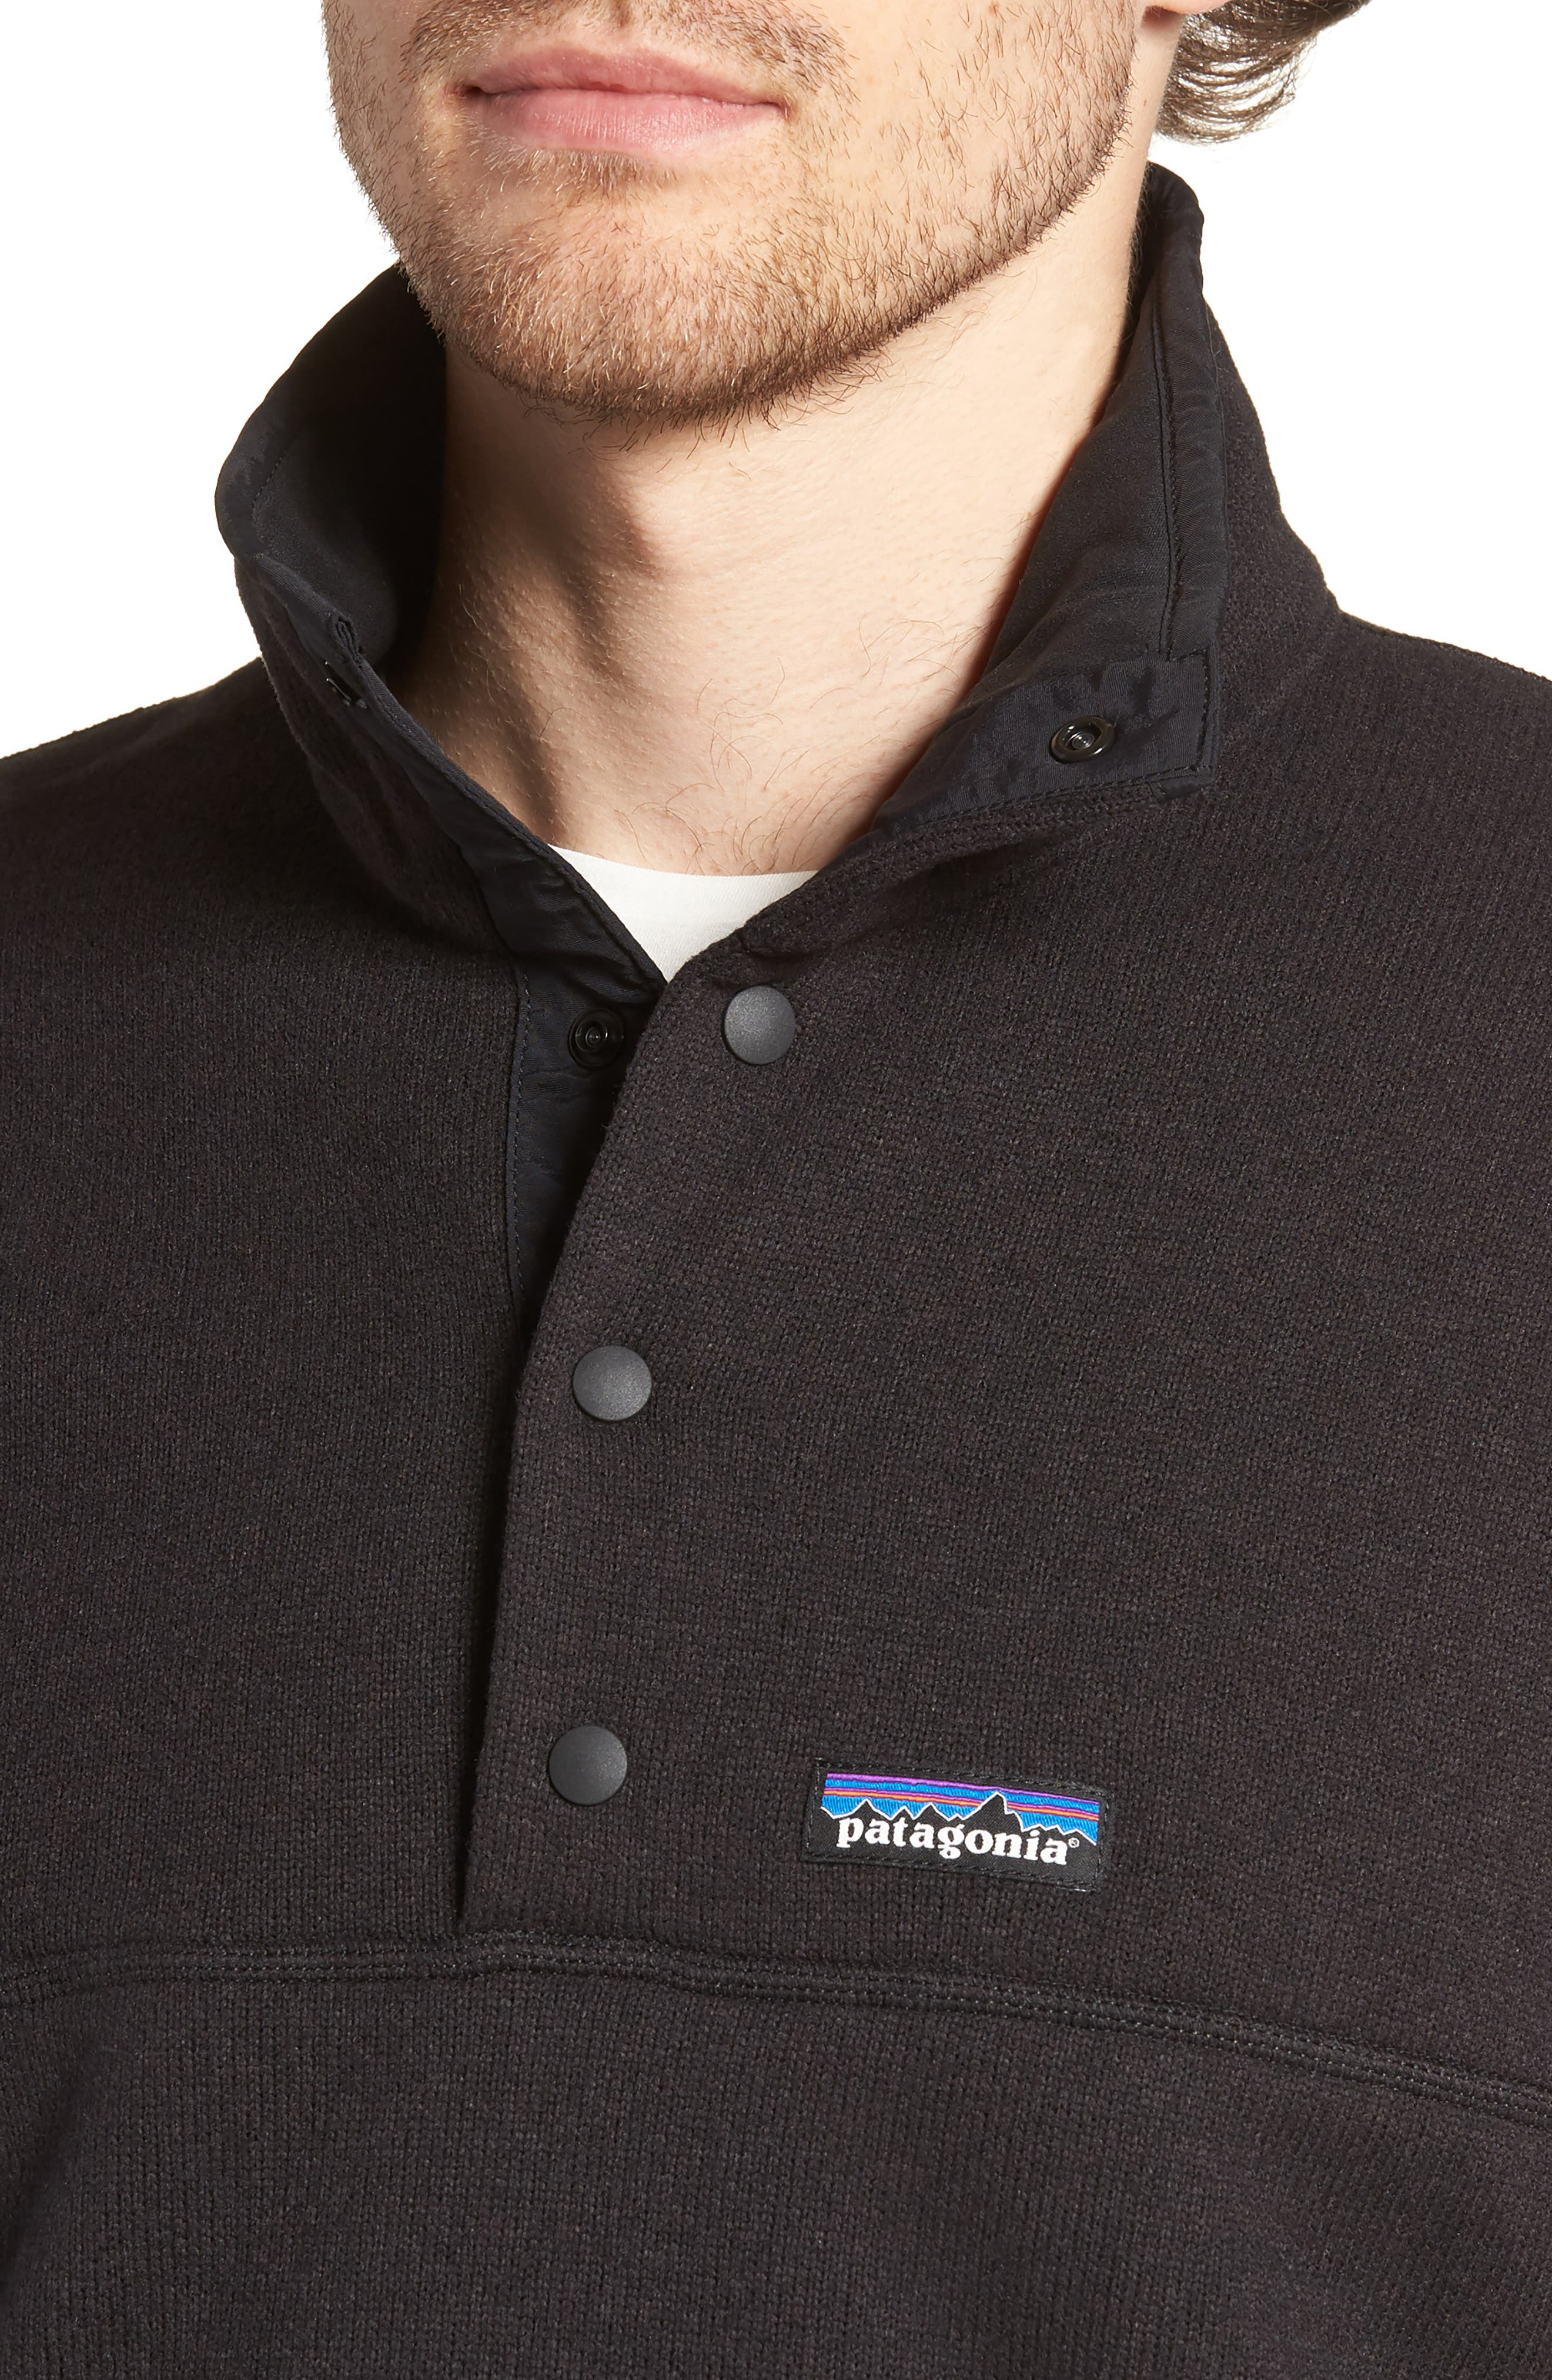 PATAGONIA,                             Lightweight Better Sweater Pullover,                             Alternate thumbnail 4, color,                             001